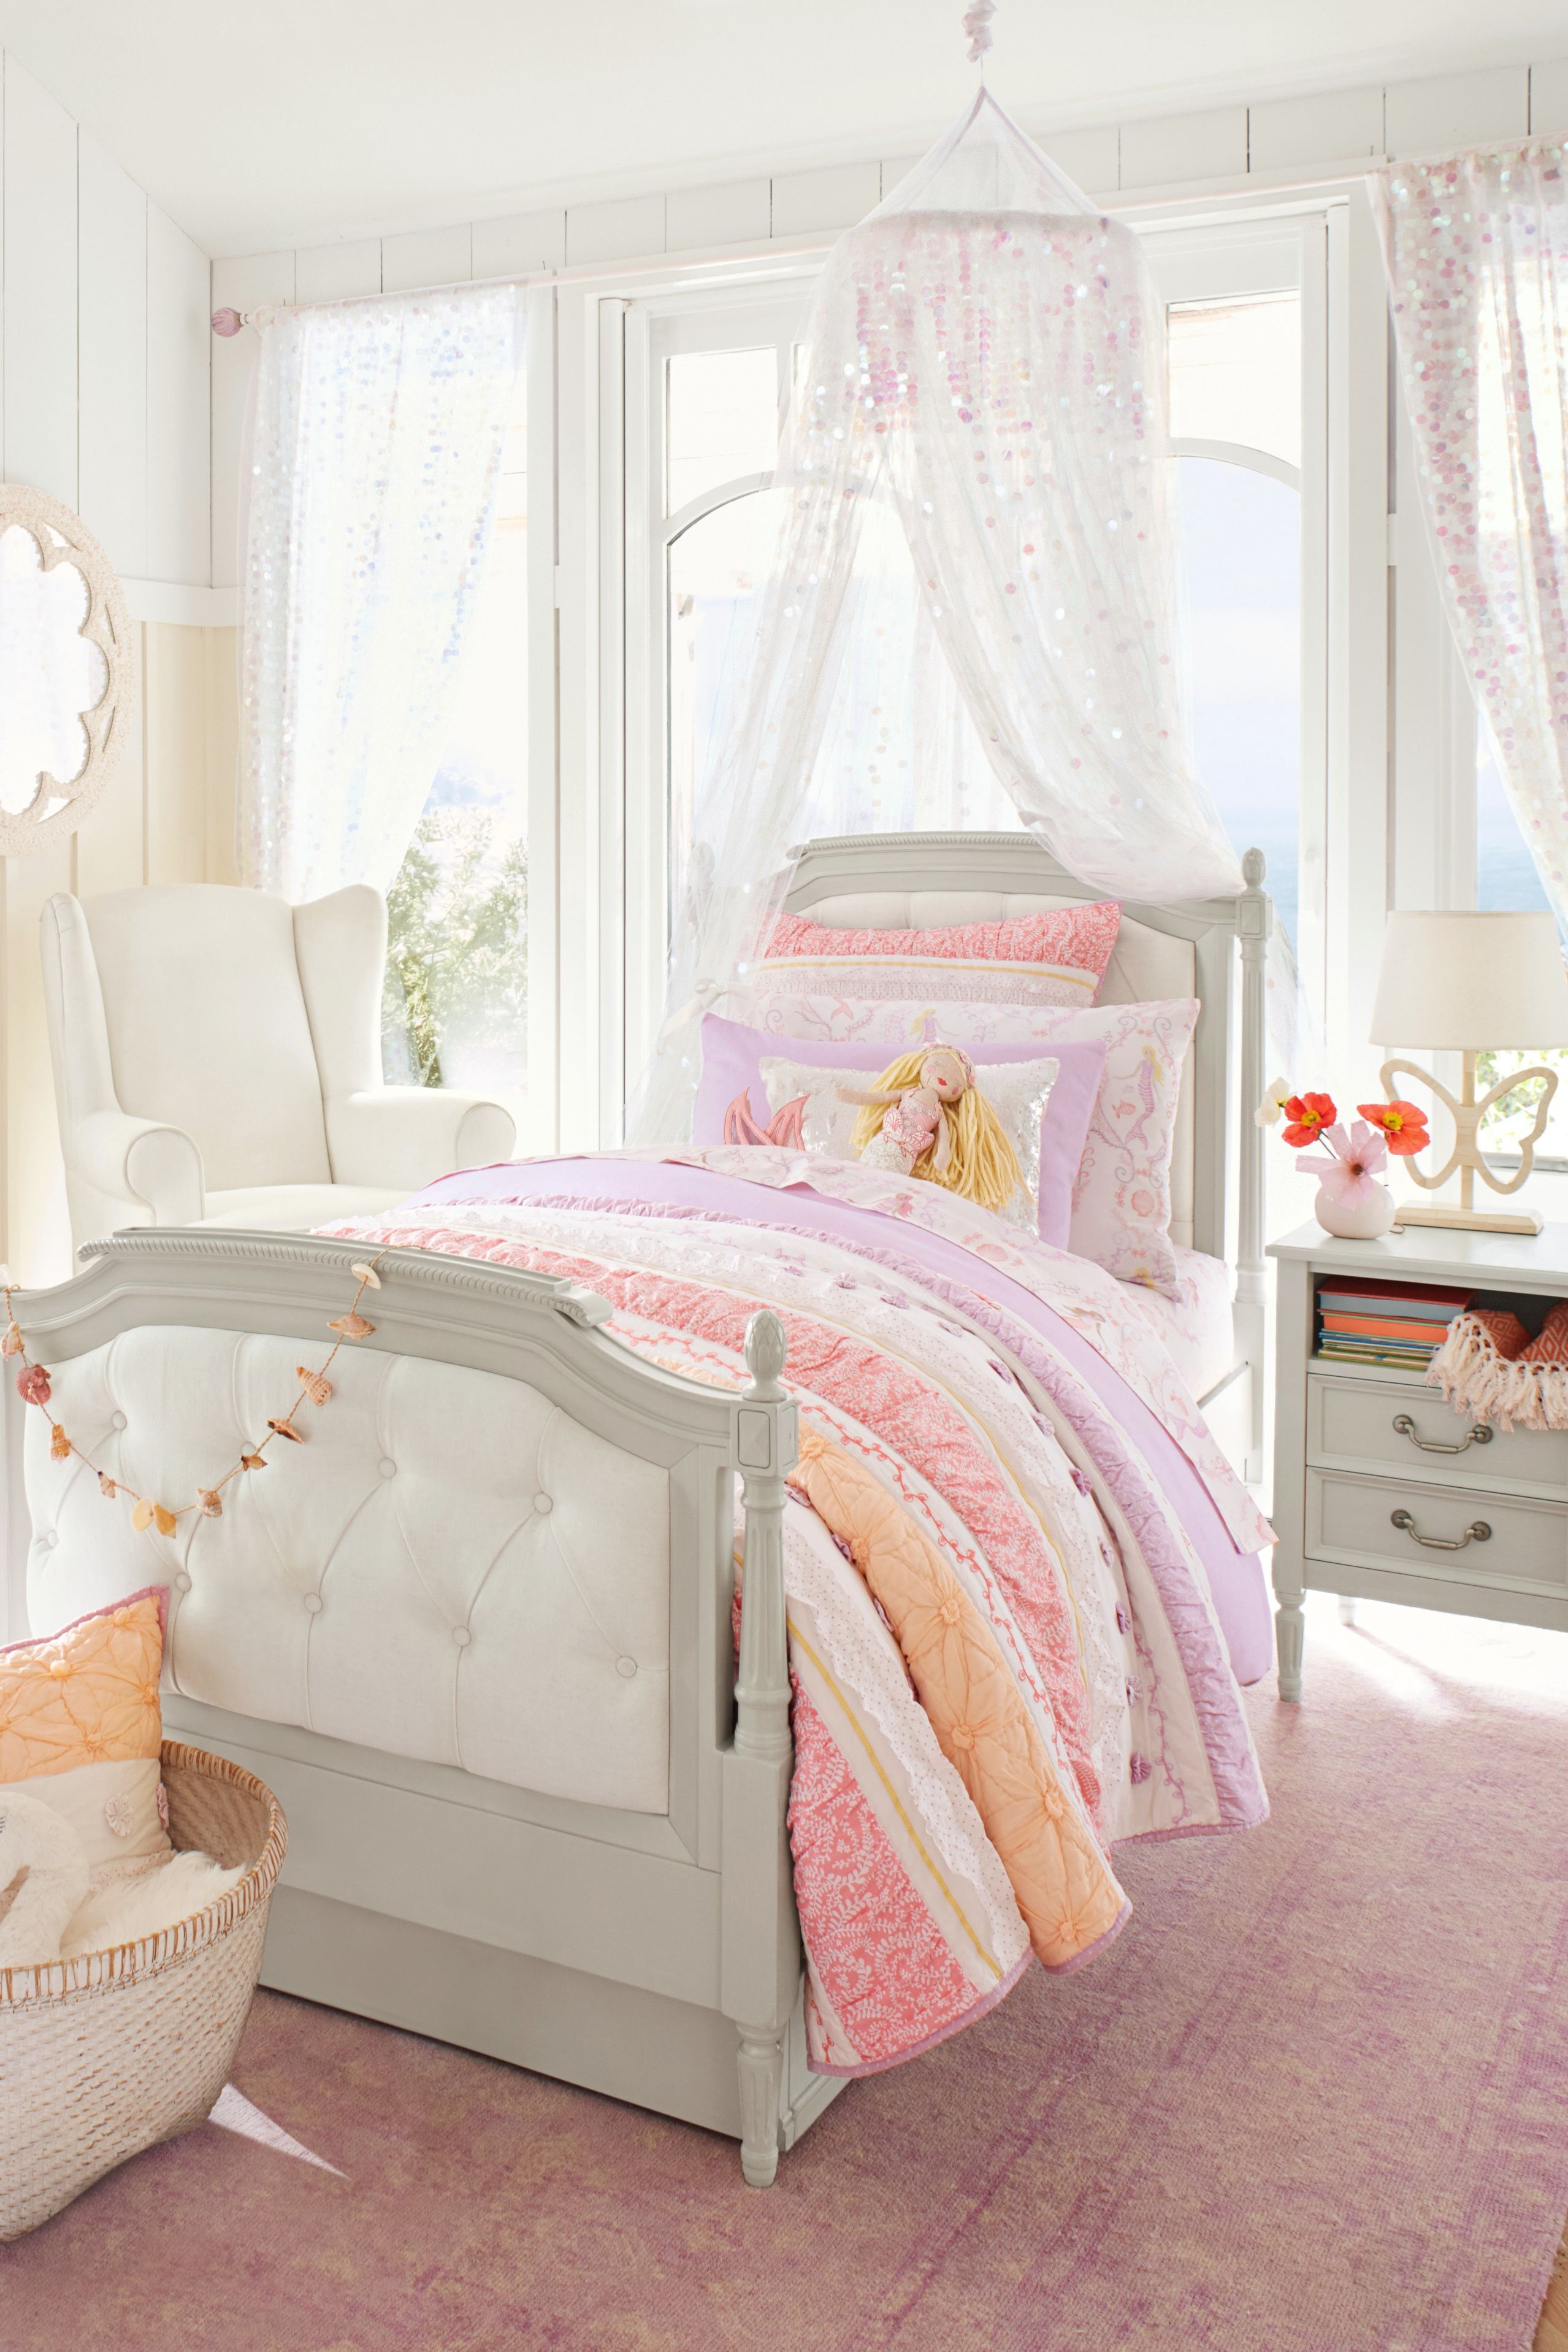 Bailey Ruffle Reversible Quilt Pink